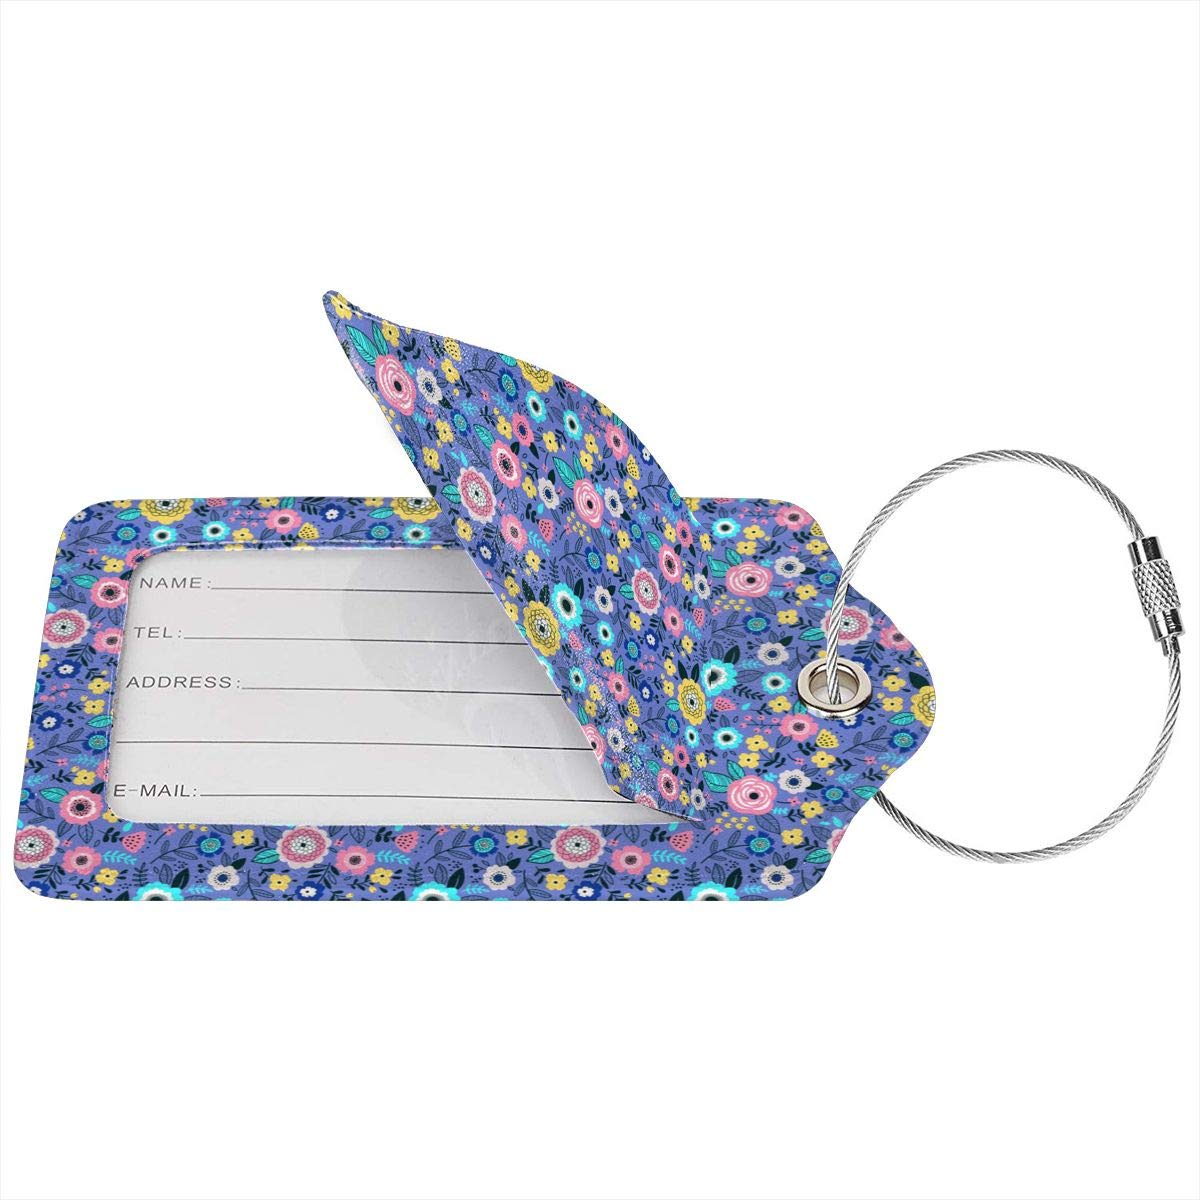 Lucaeat Sweet Tone Of Butterflies Luggage Tag PU Leather Bag Tag Travel Suitcases ID